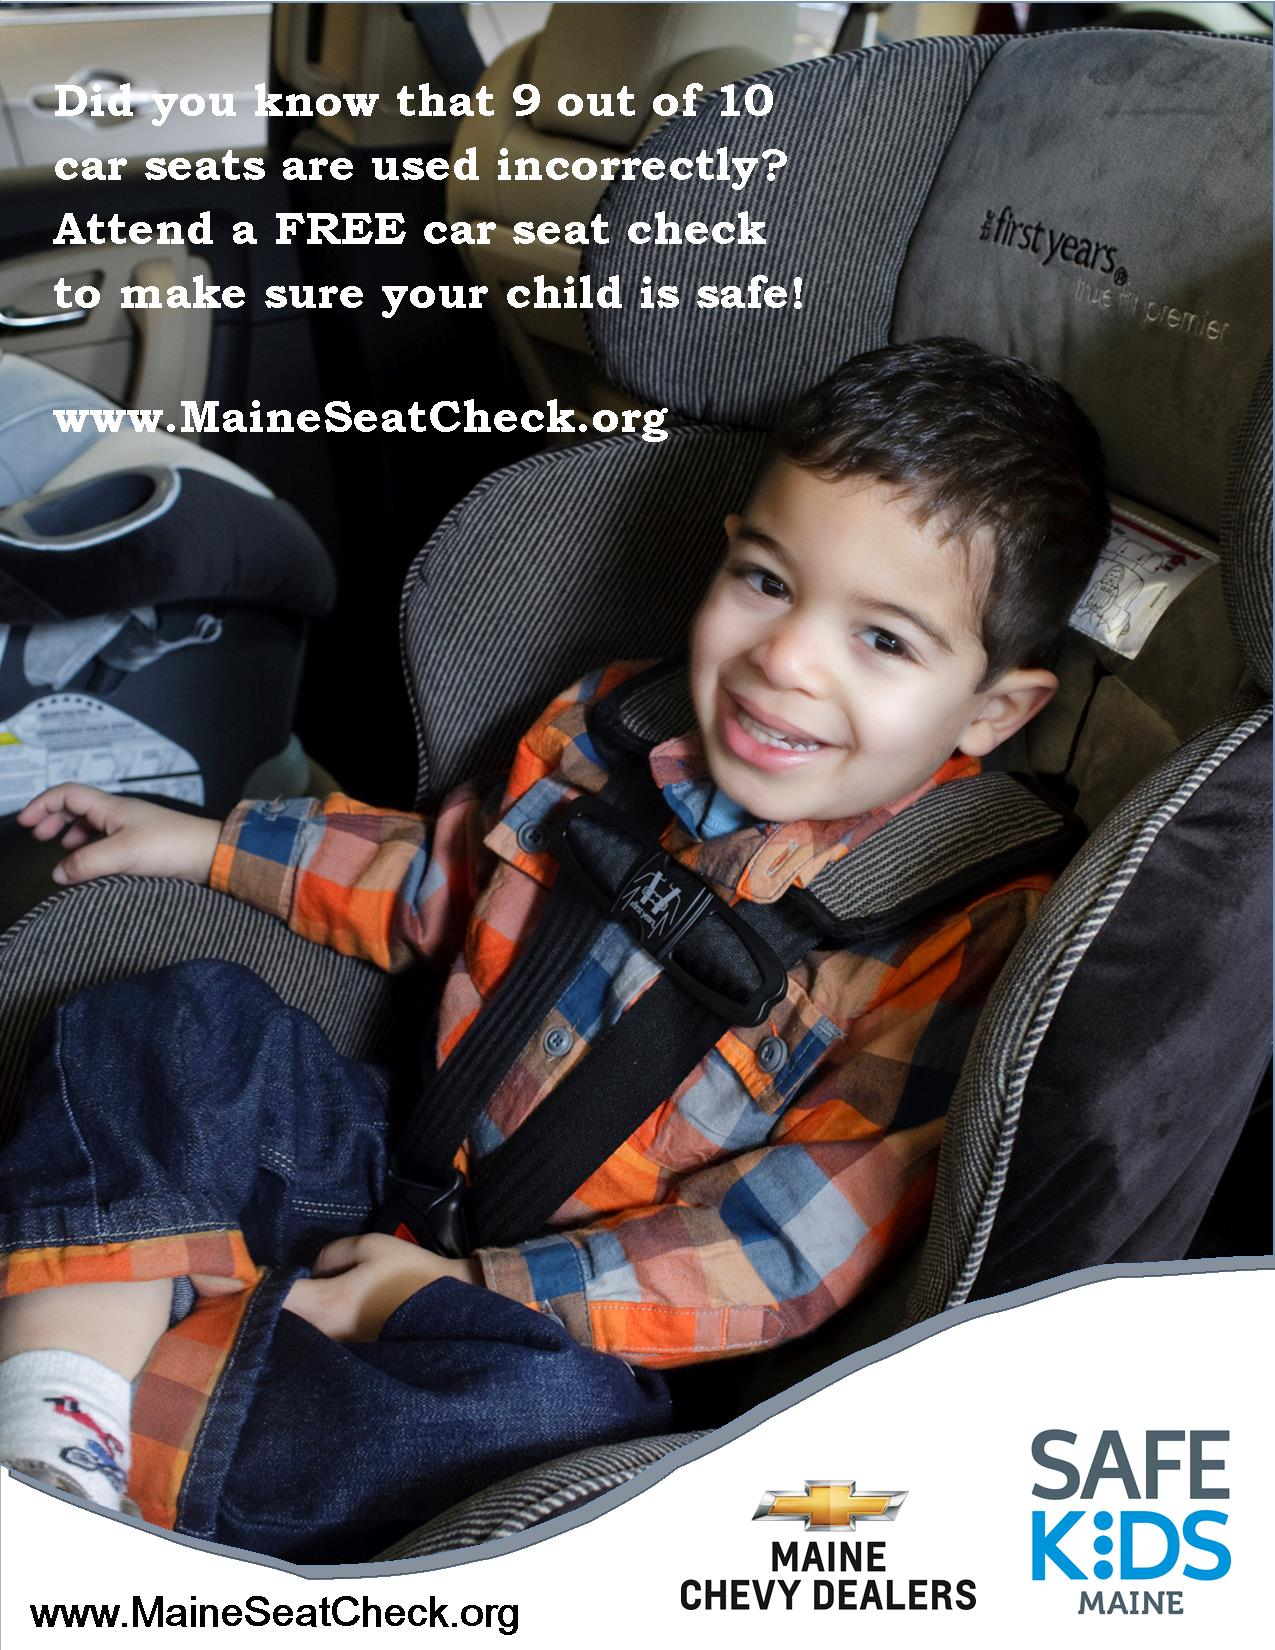 Safe Kids Maine